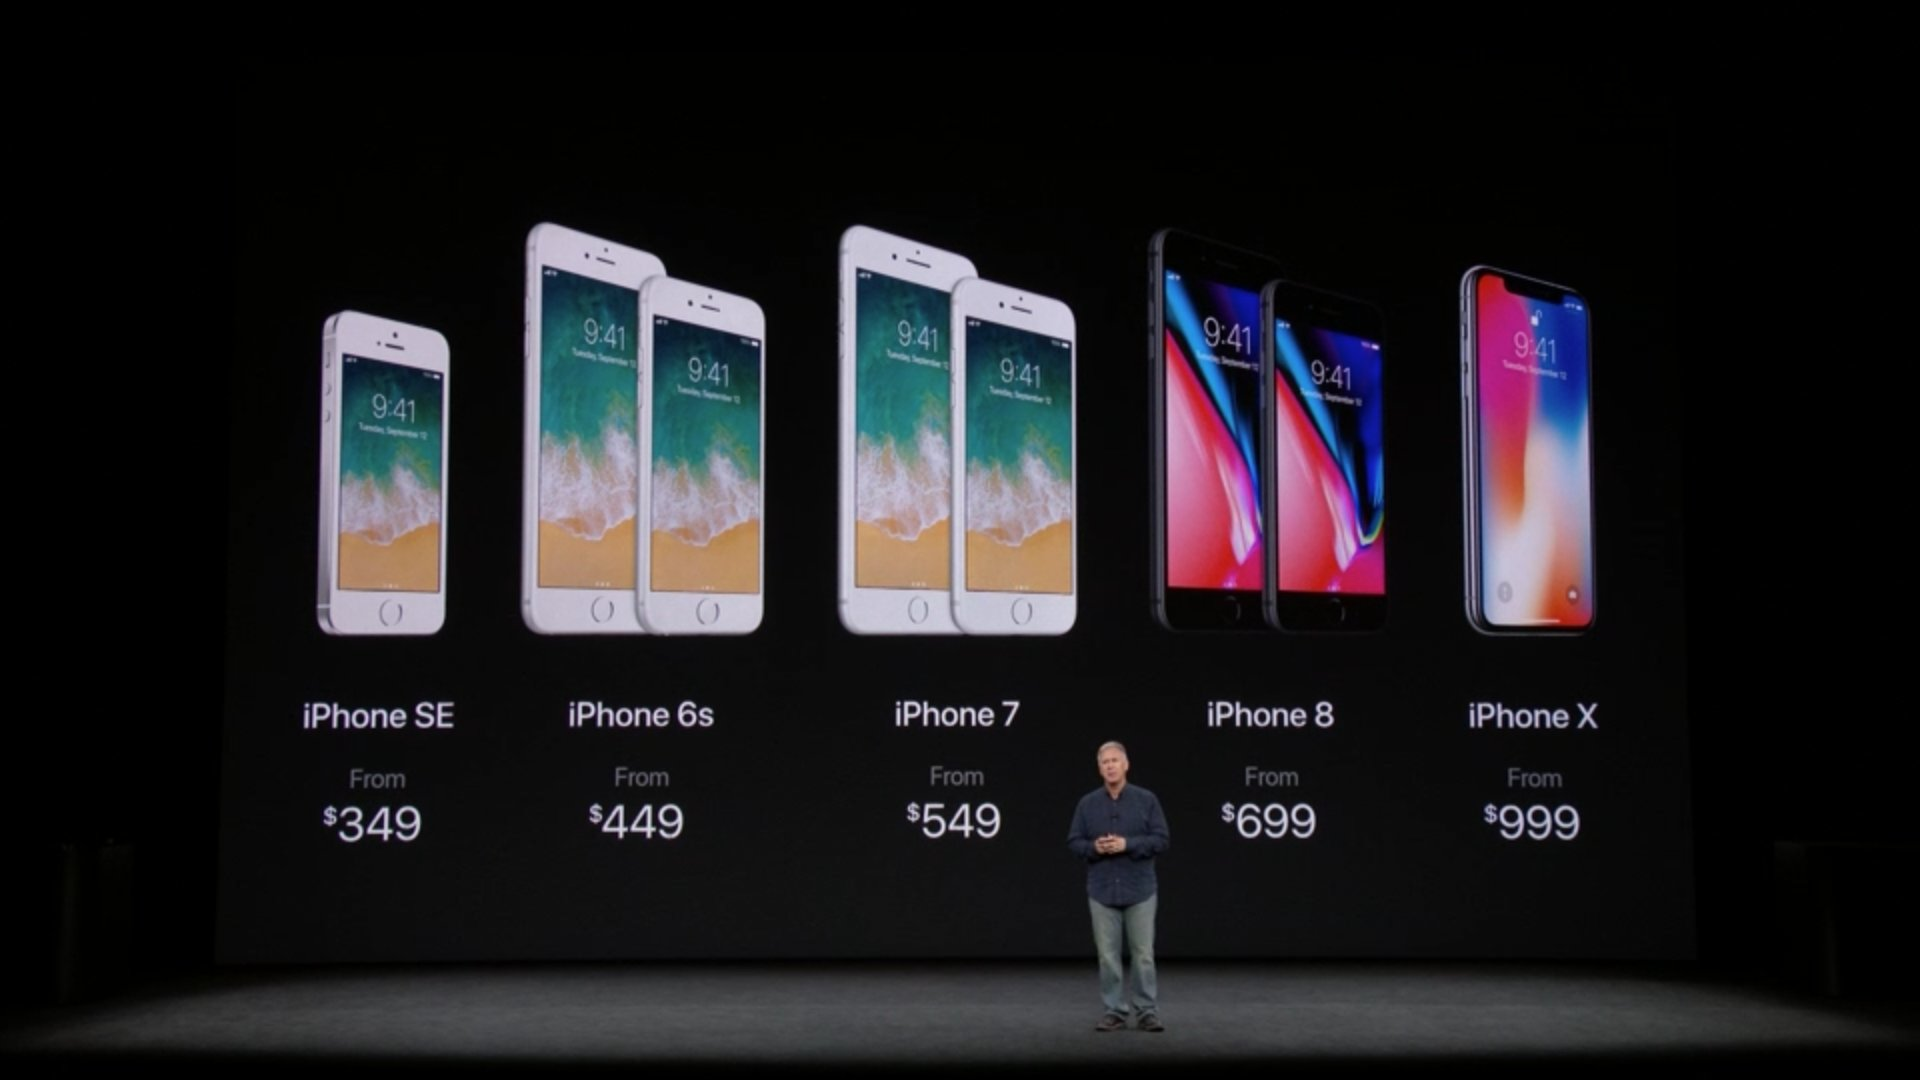 The new iPhone lineup. #AppleEvent https://t.co/8GYgkEqIgz